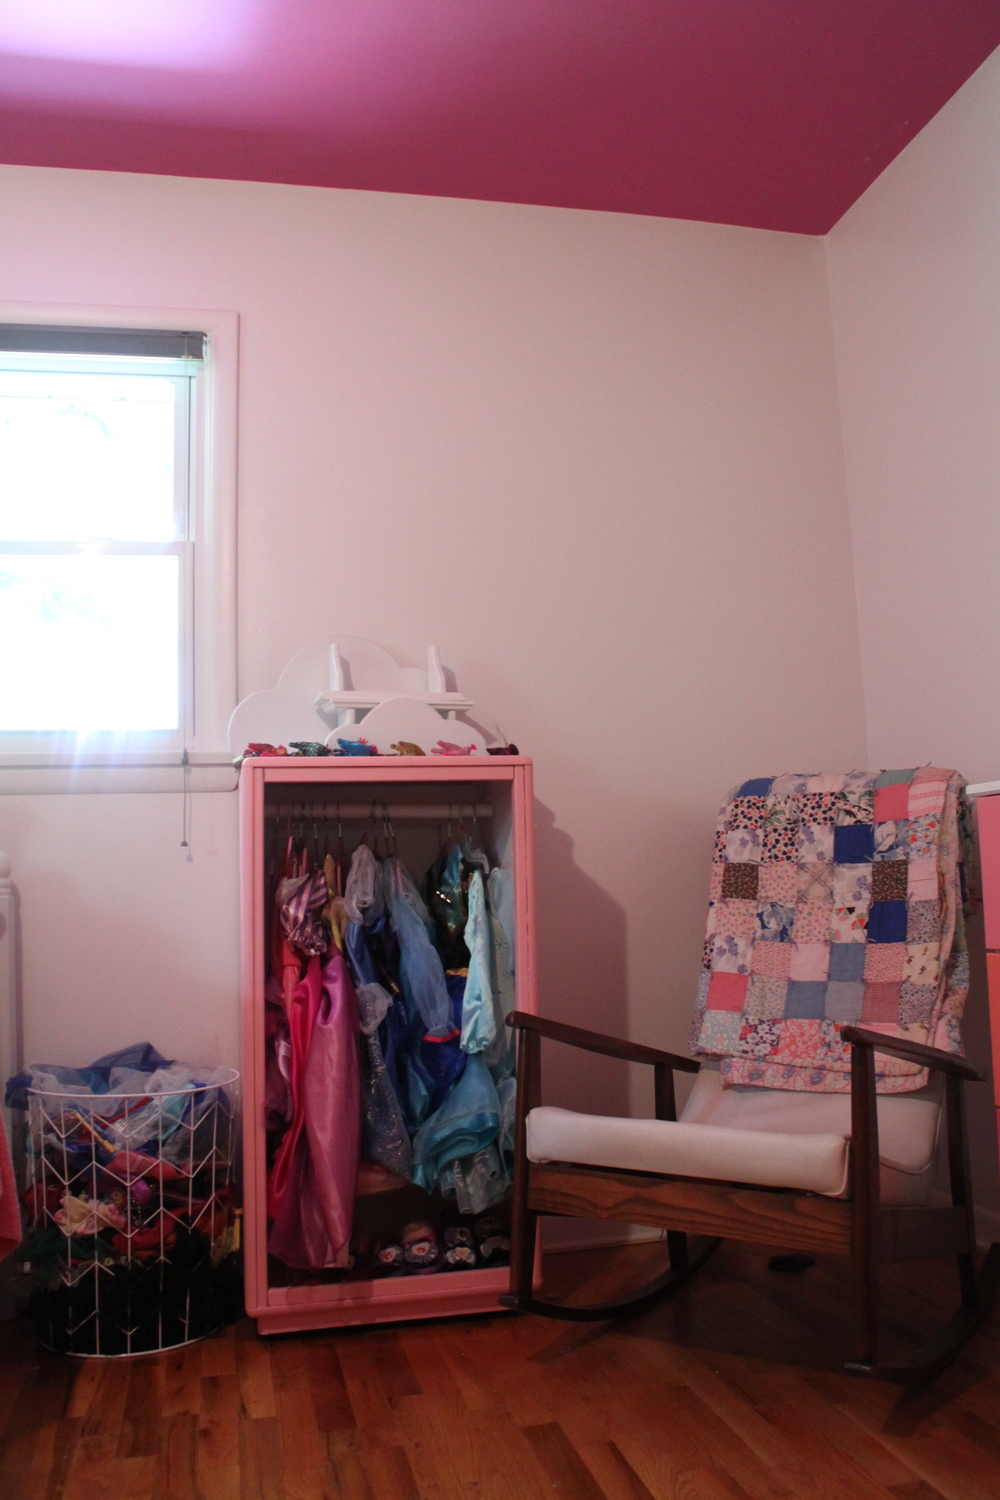 Notice the shelves and other hanging things on top of the closet? Yea...we haven't hung anything up in the room yet.